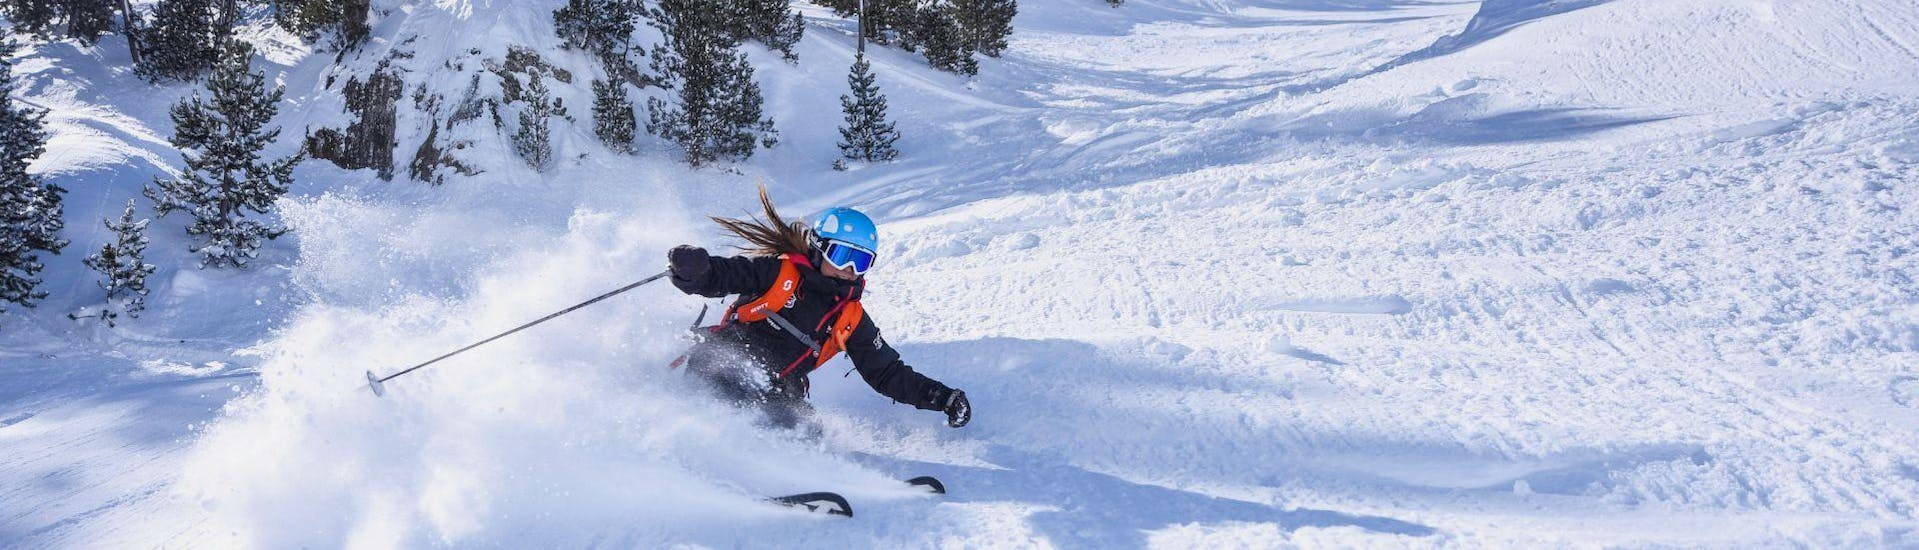 A ski instructor from Escuela Ski Cerler skies down the snowy slopes in a sporty and skillful way.